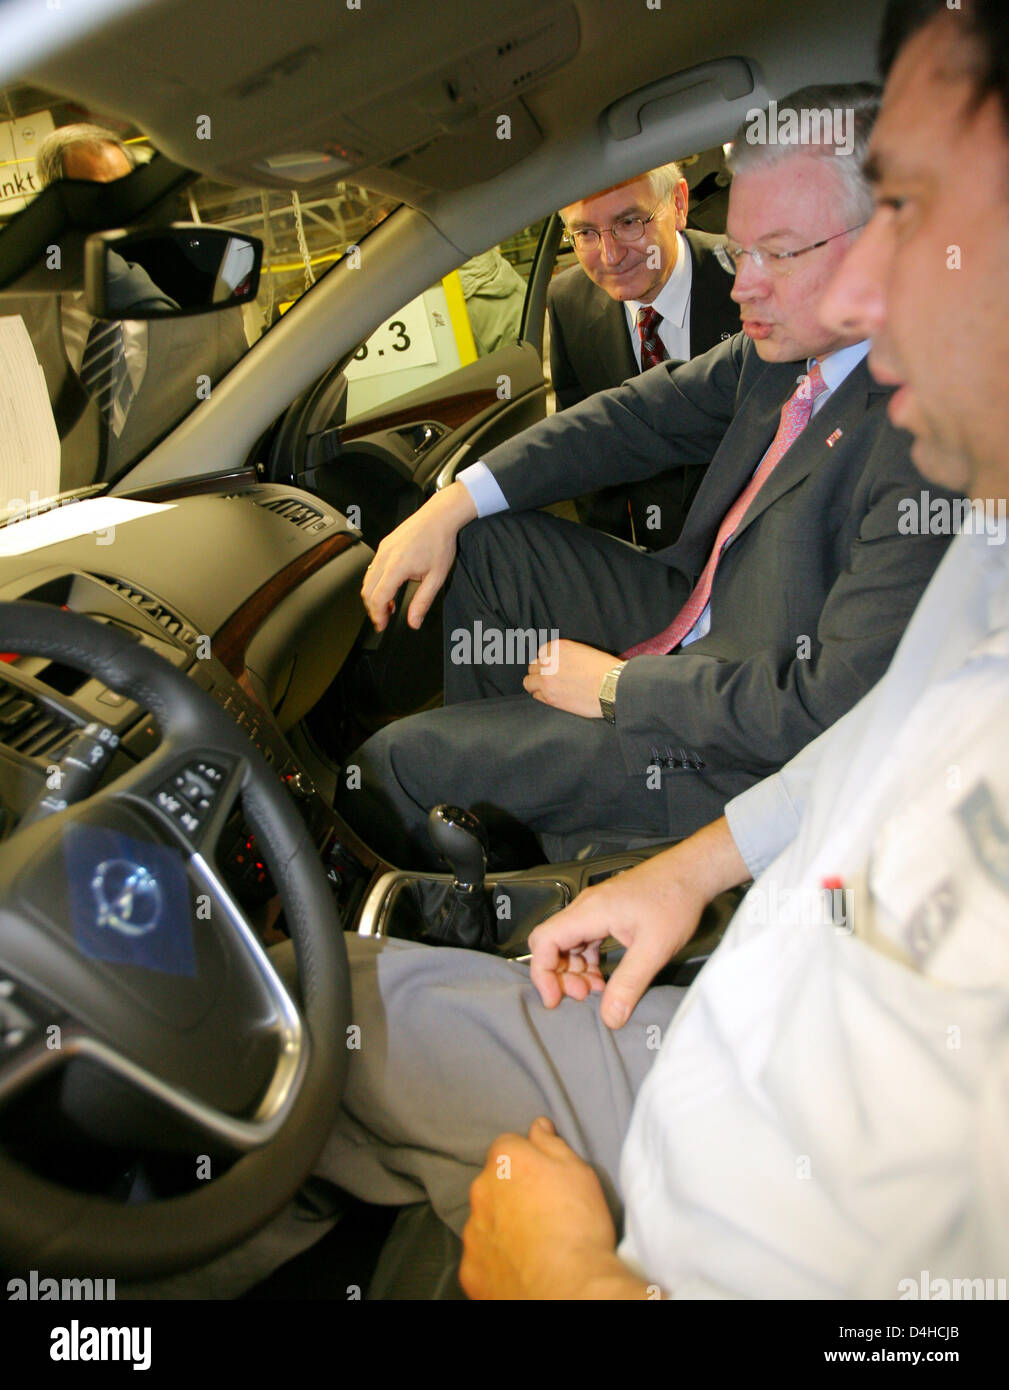 Prime Minister of Hesse, Roland Koch (C) and head of Opel Hans Demant (L) chat with an Opel employee inside the - Stock Image